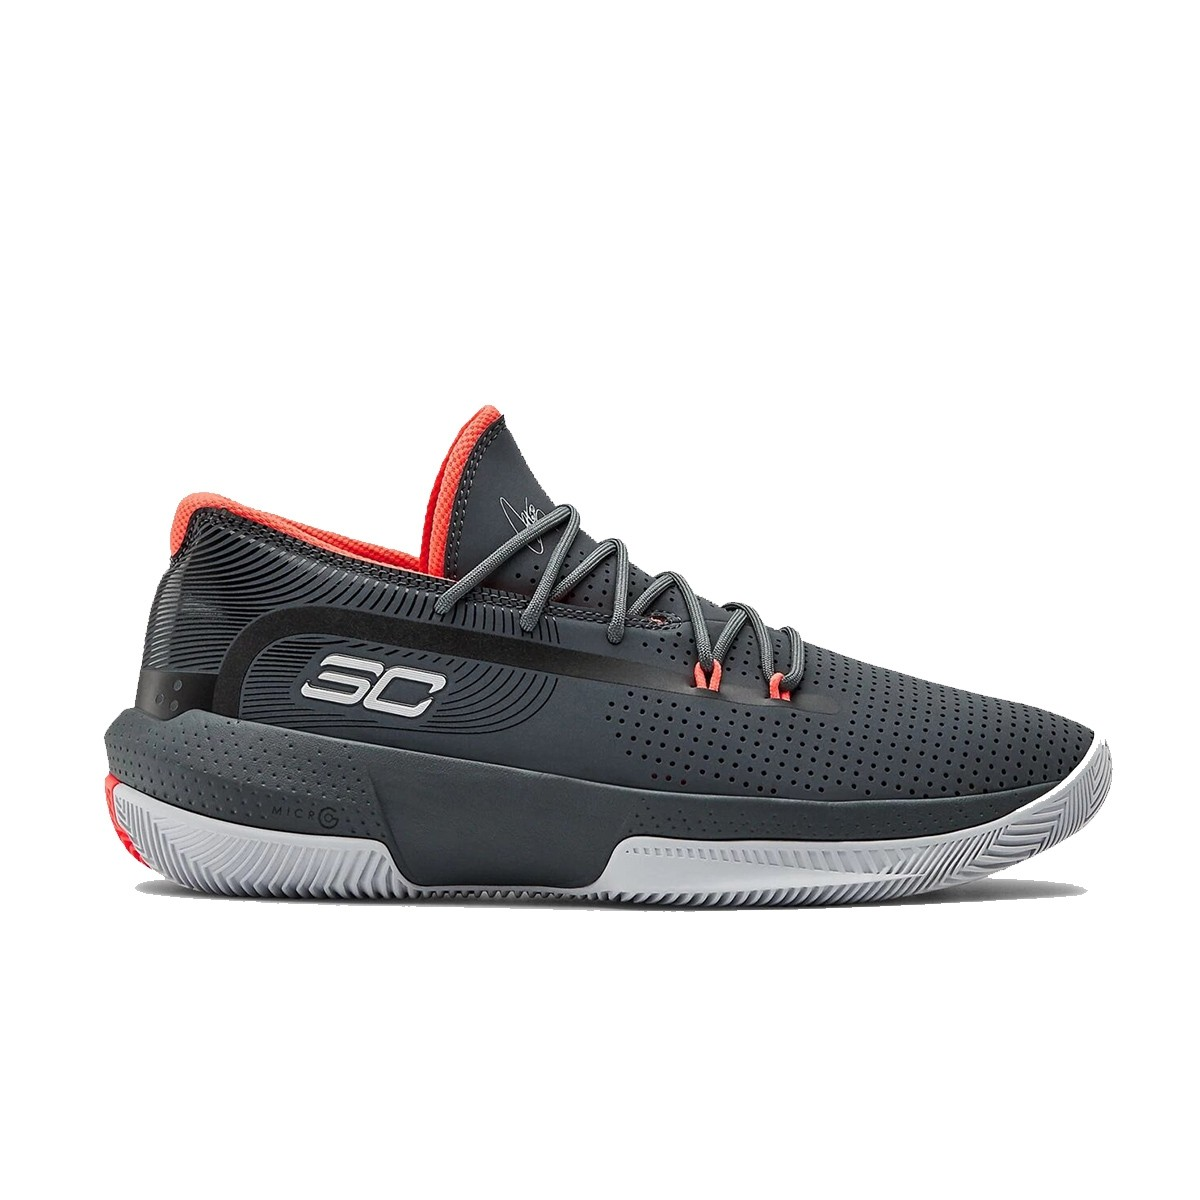 UA SC 3ZER0 III GS 'Dark Grey'